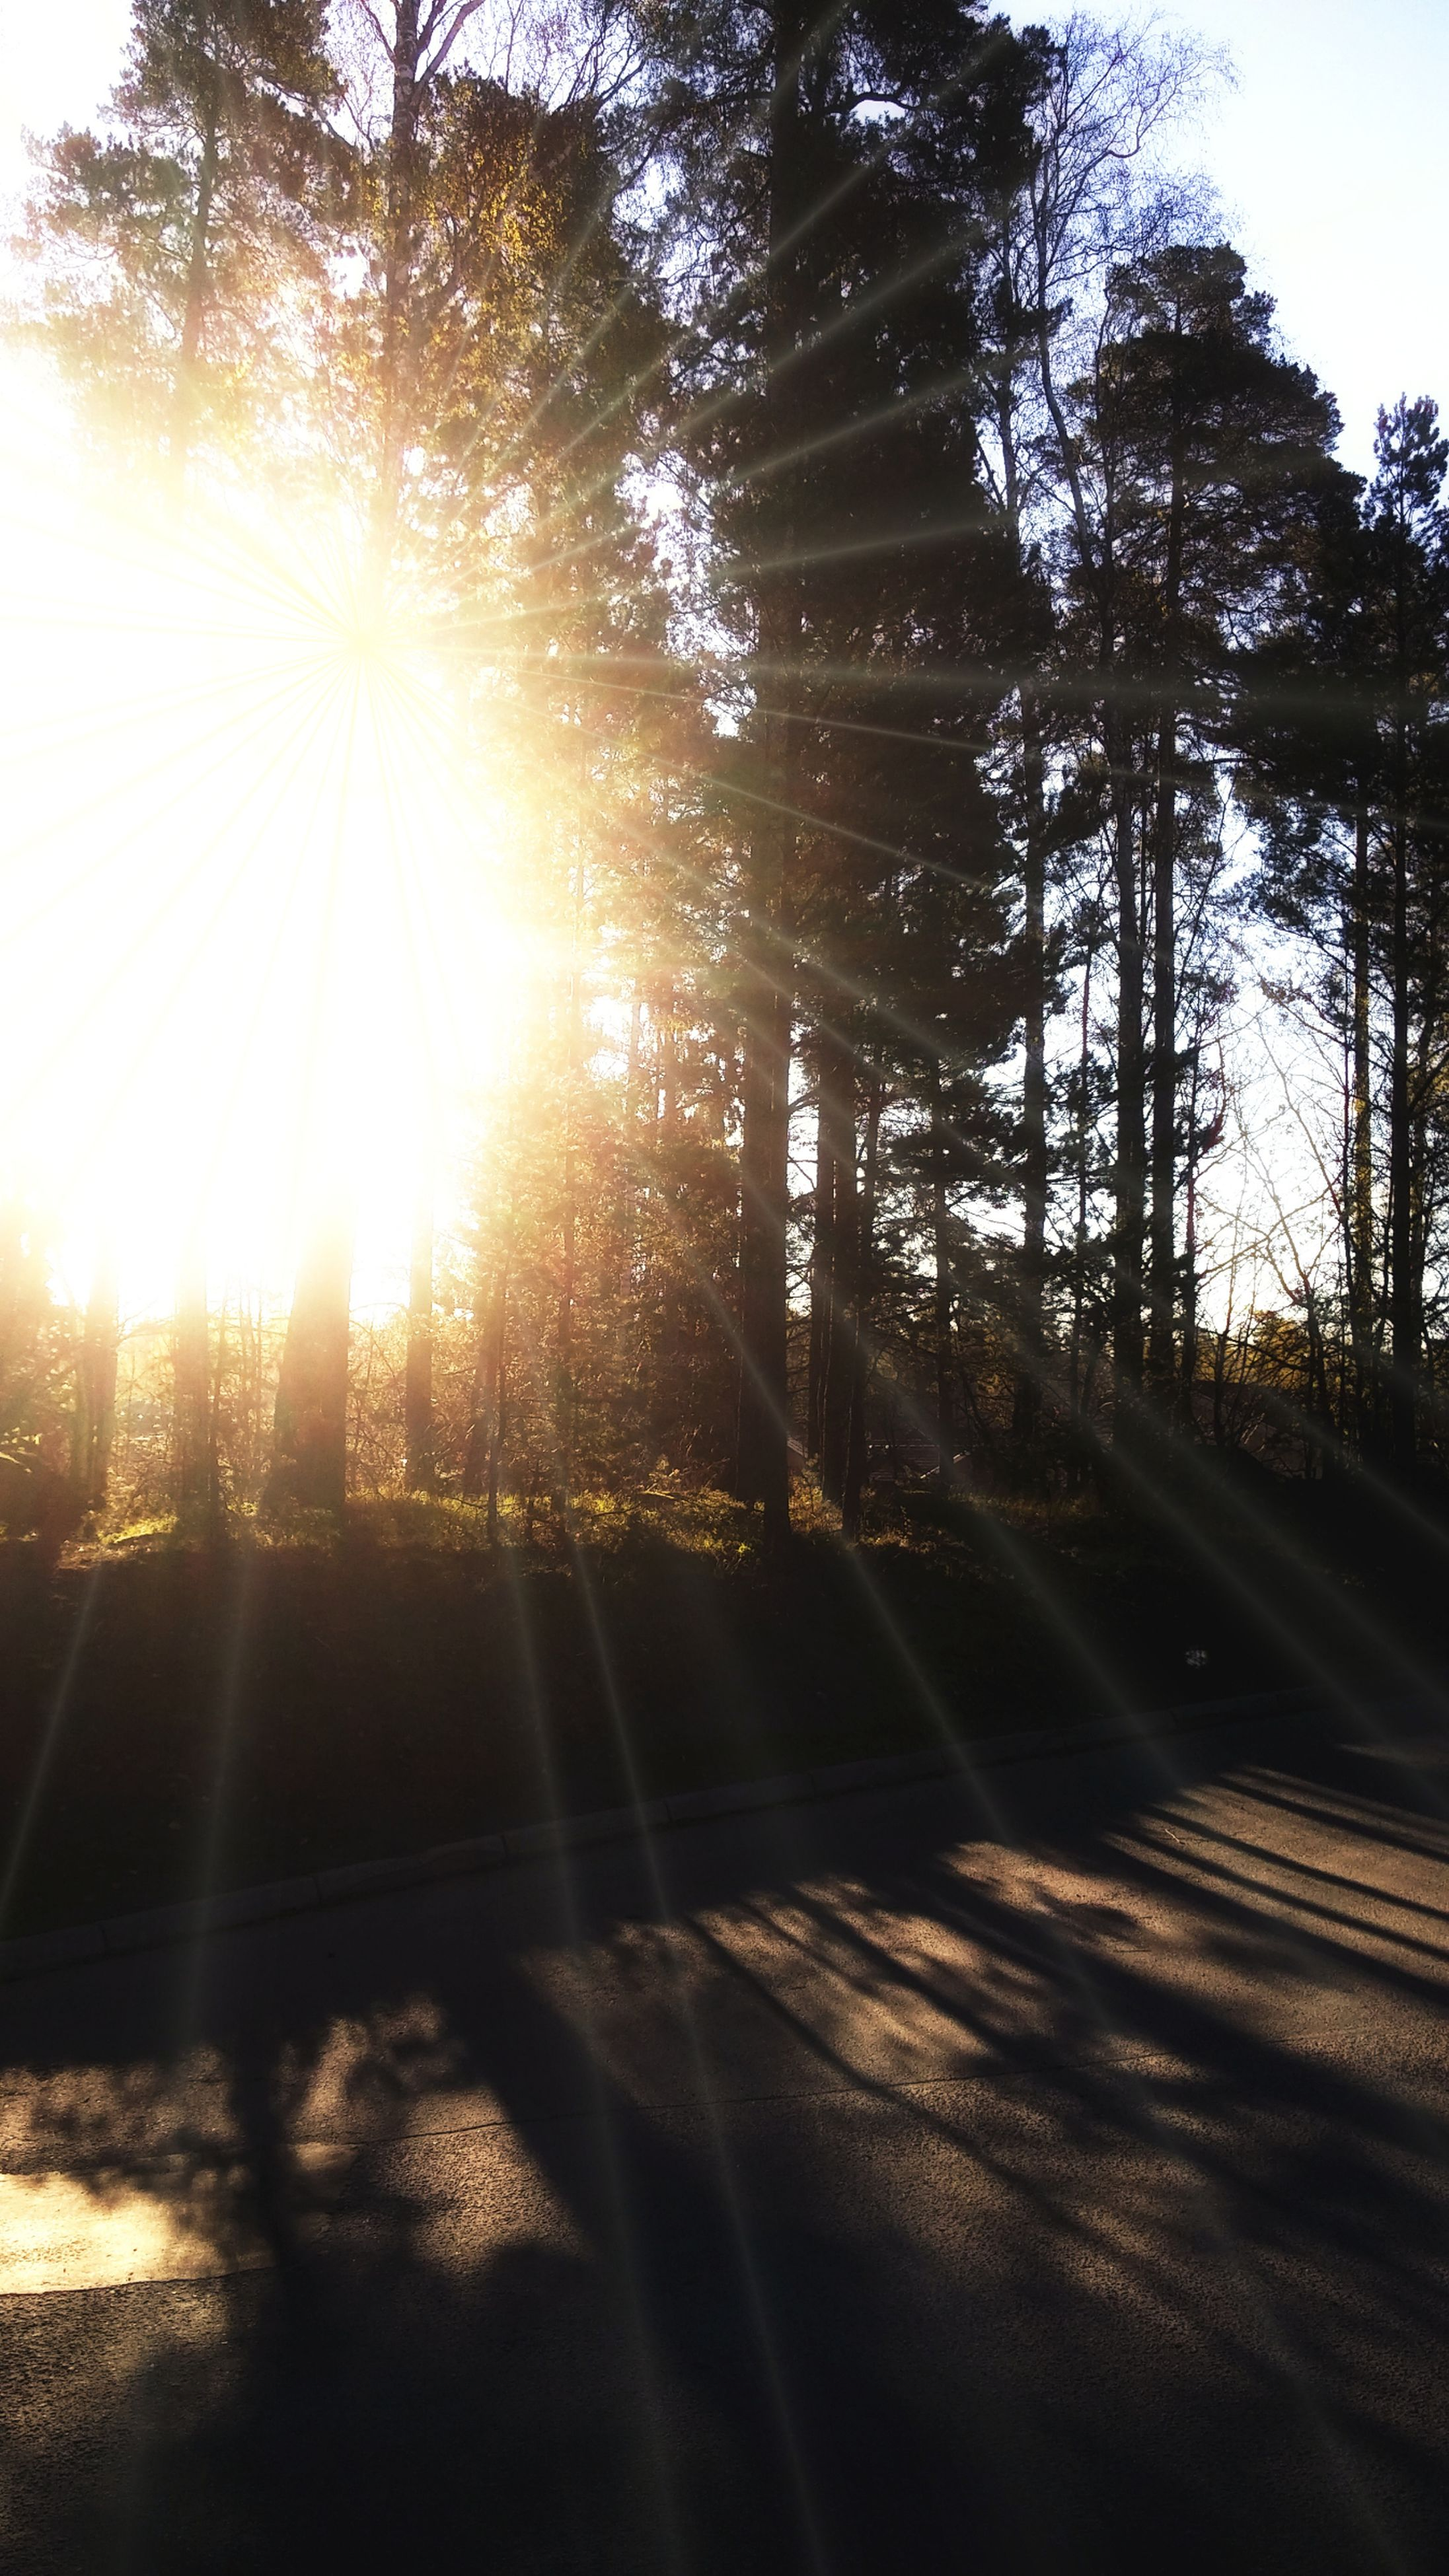 tree, sunbeam, sunlight, sun, lens flare, nature, bright, no people, tranquility, tranquil scene, scenics, road, beauty in nature, day, forest, landscape, outdoors, sunset, sky